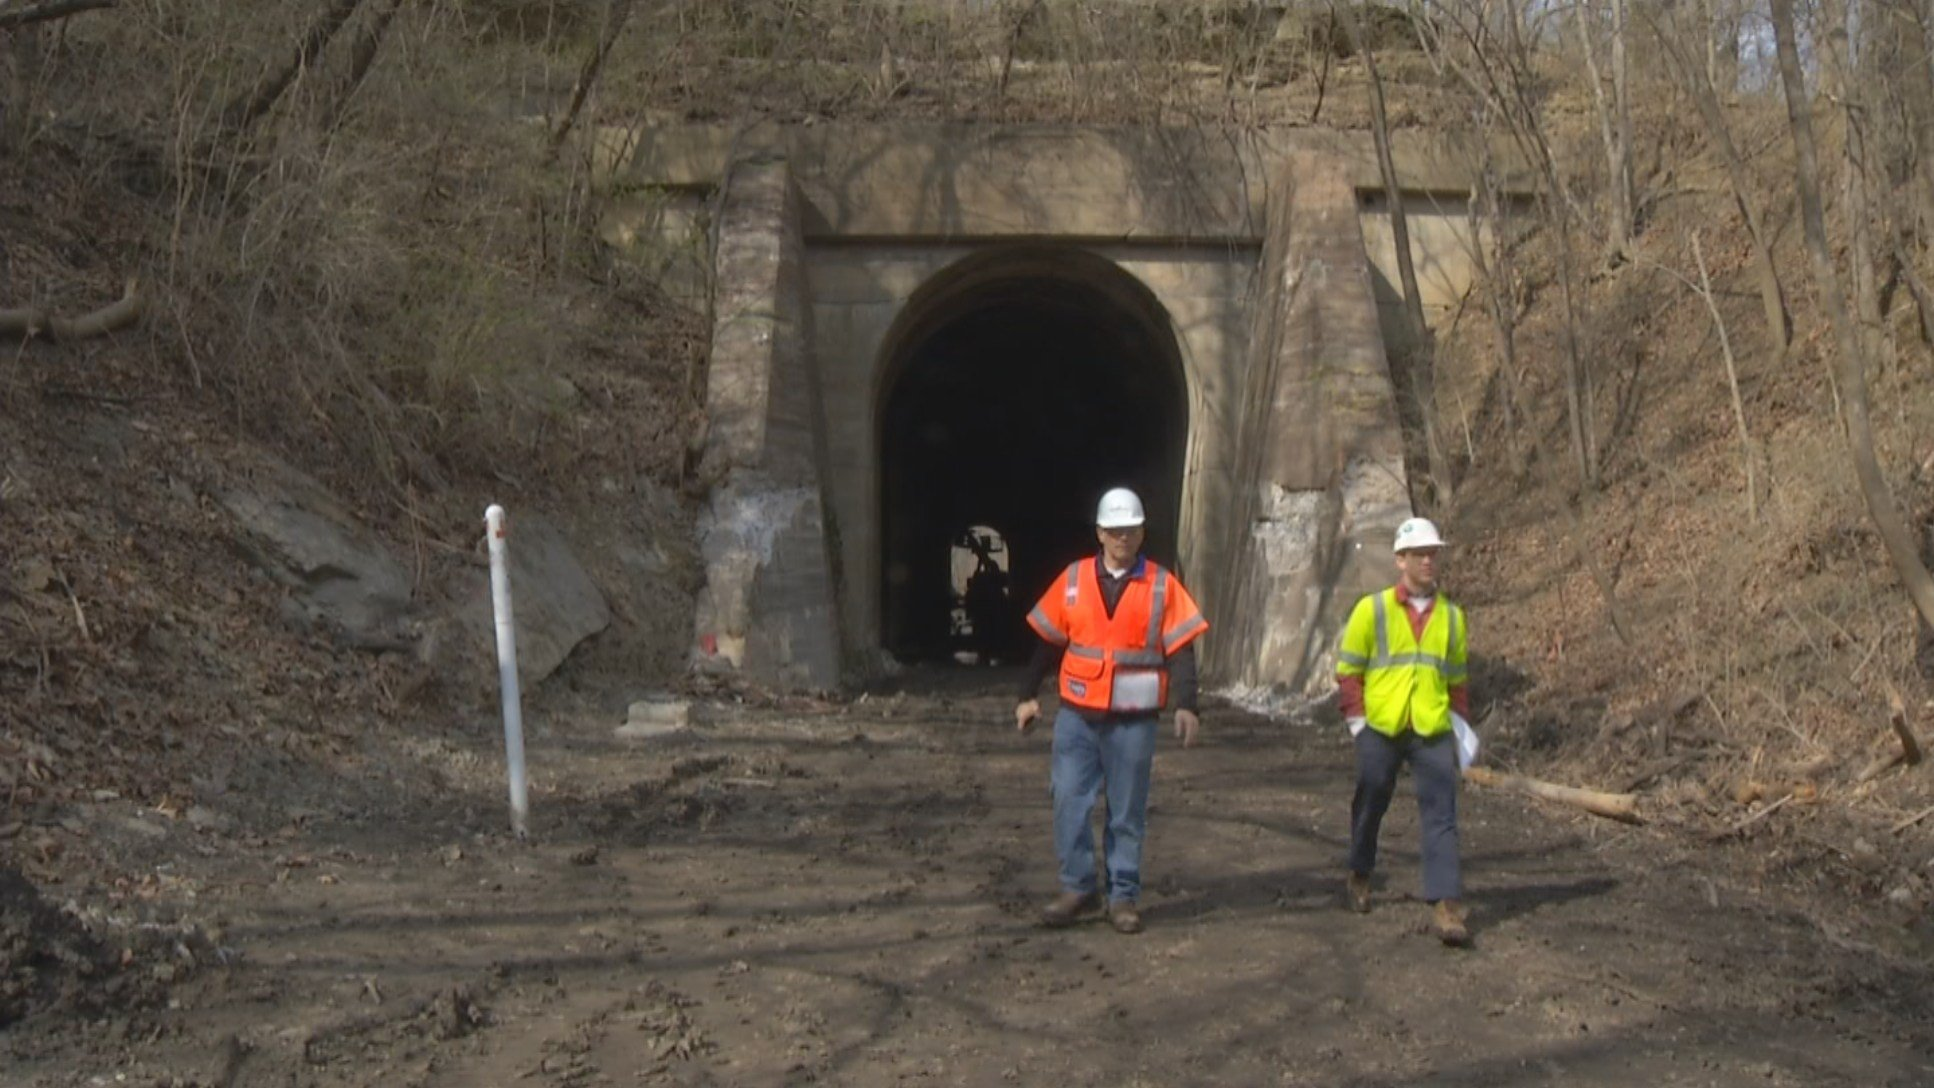 A bike trail currently under construction in Jackson County will eventually connect the Kansas City metro area to the Katy Trail. (KCTV5)